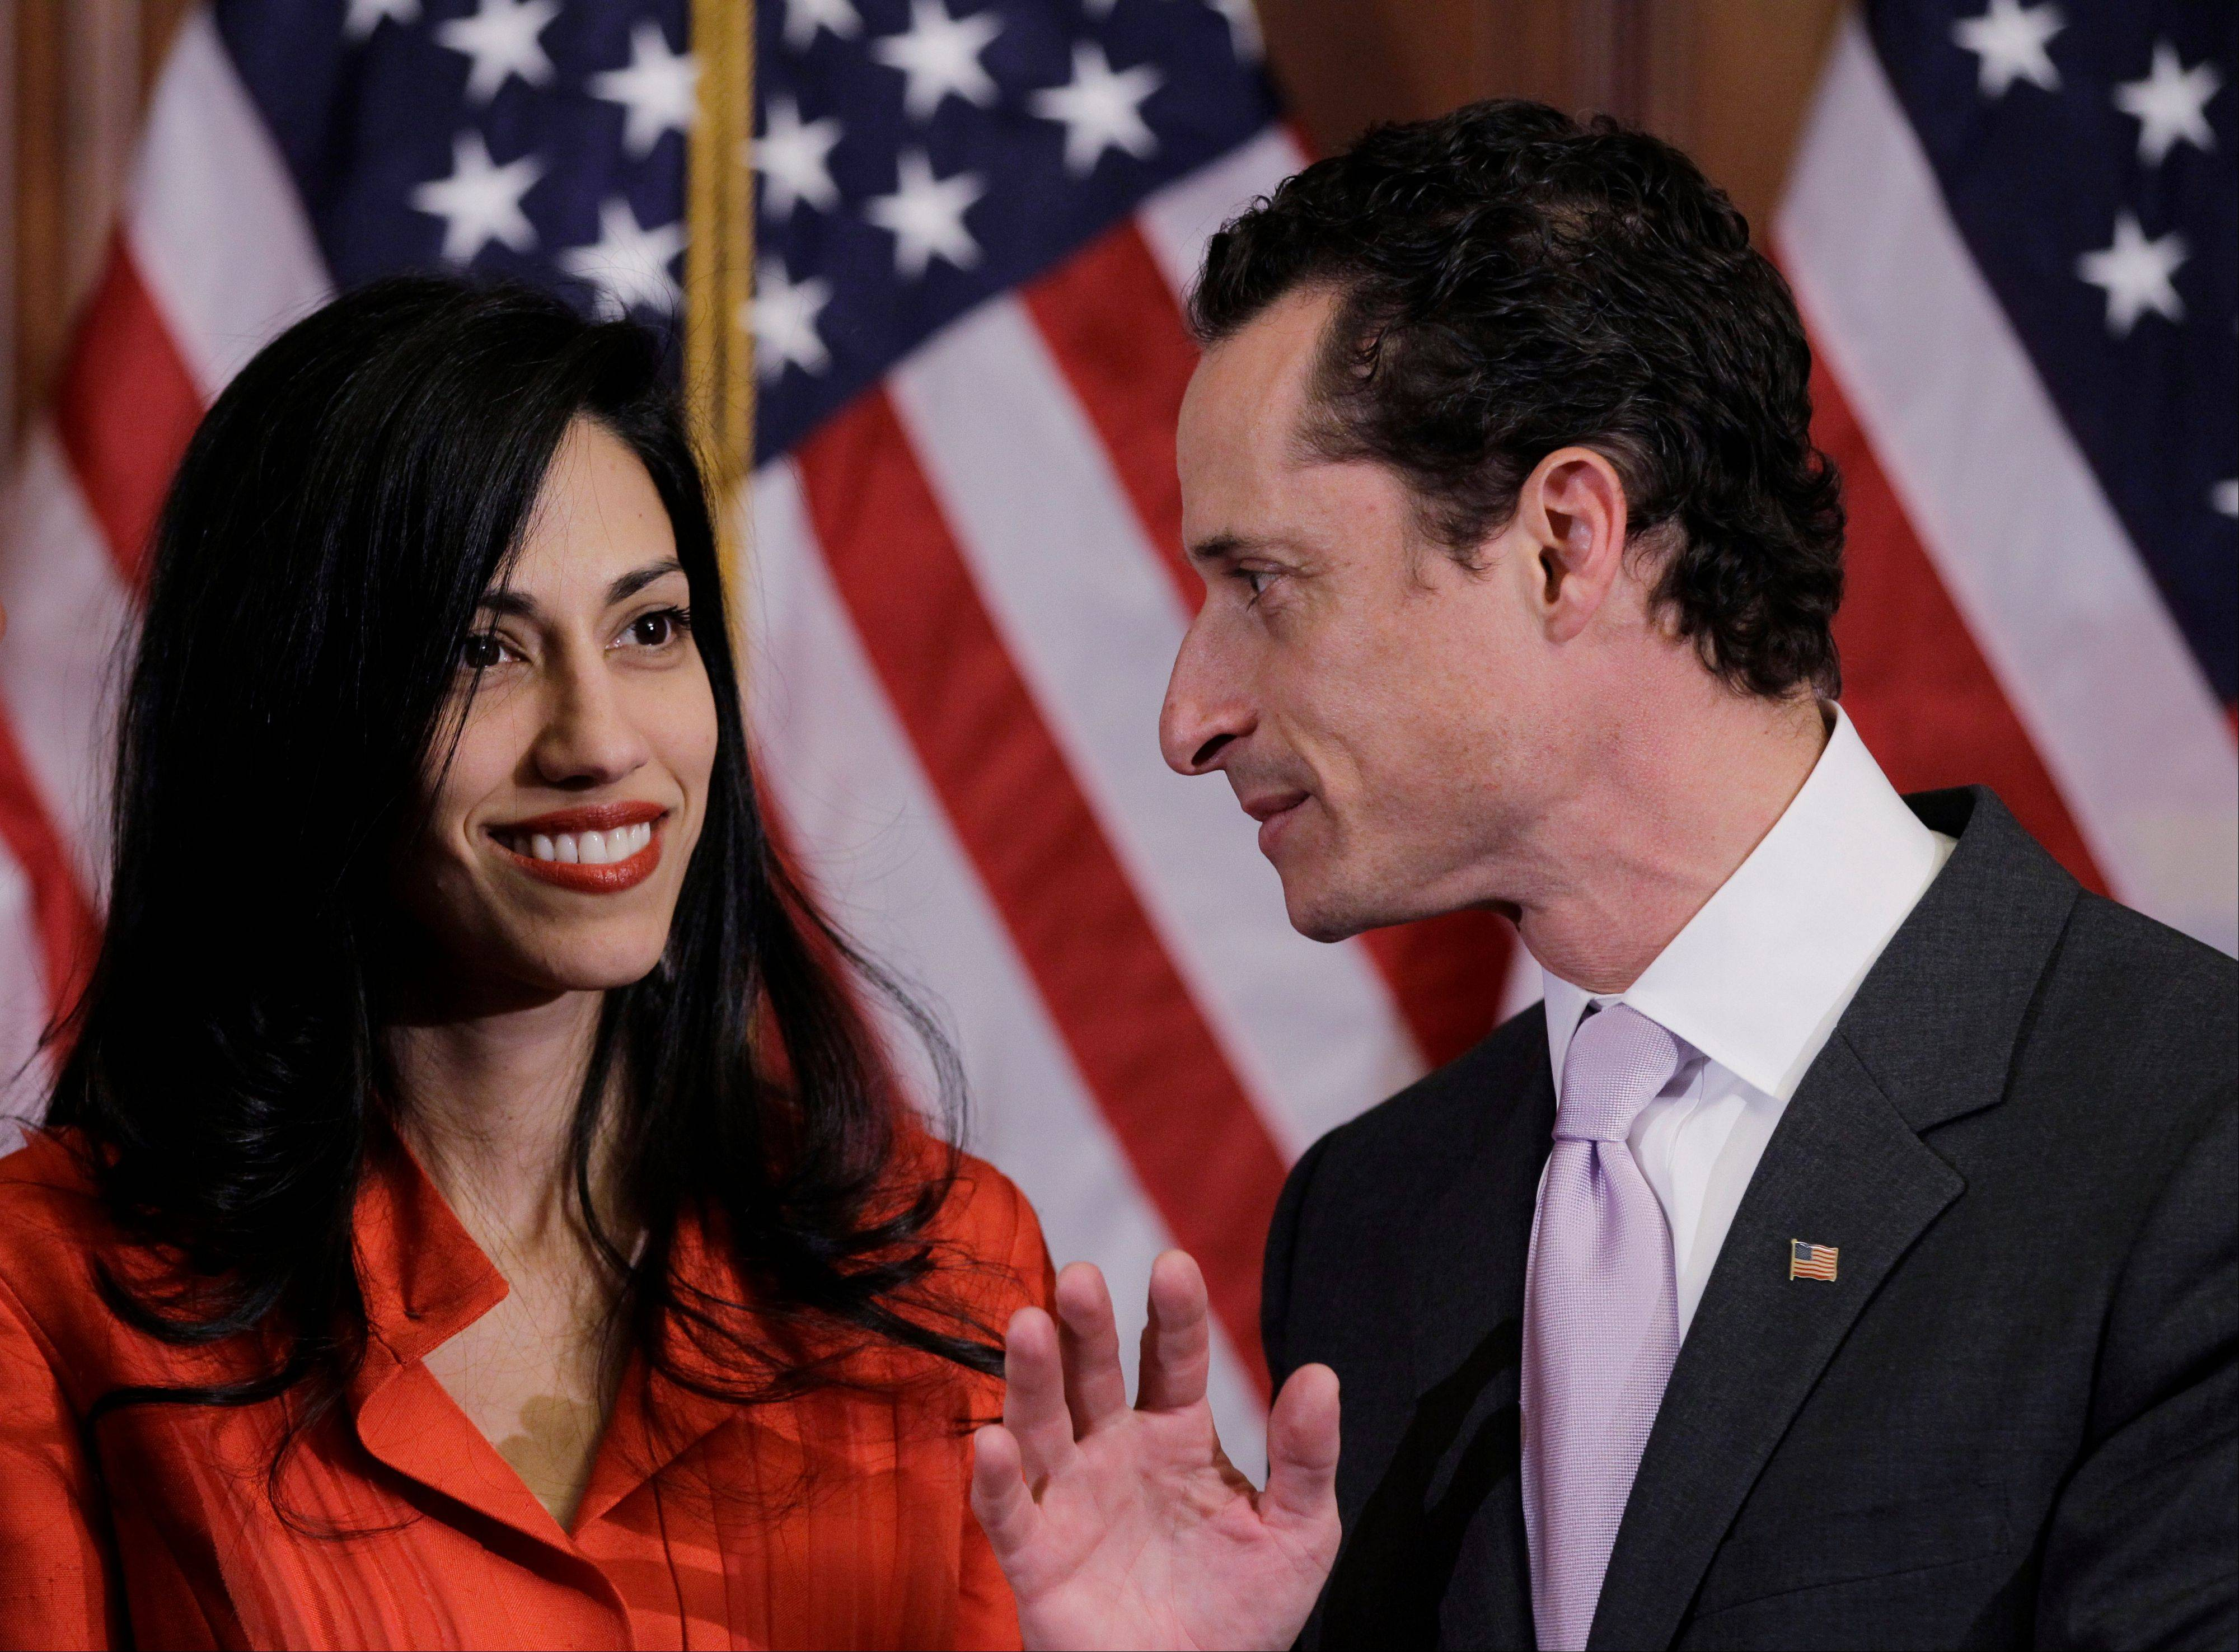 Anthony Weiner and his wife, Huma Abedin. When Abedin's name and face first started appearing in the media six years ago, lots of people couldn't help but wonder what this beautiful, ambitious woman with high-fashion sense and a world-class Rolodex saw in Anthony Weiner. That's a question New Yorkers are asking themselves again.